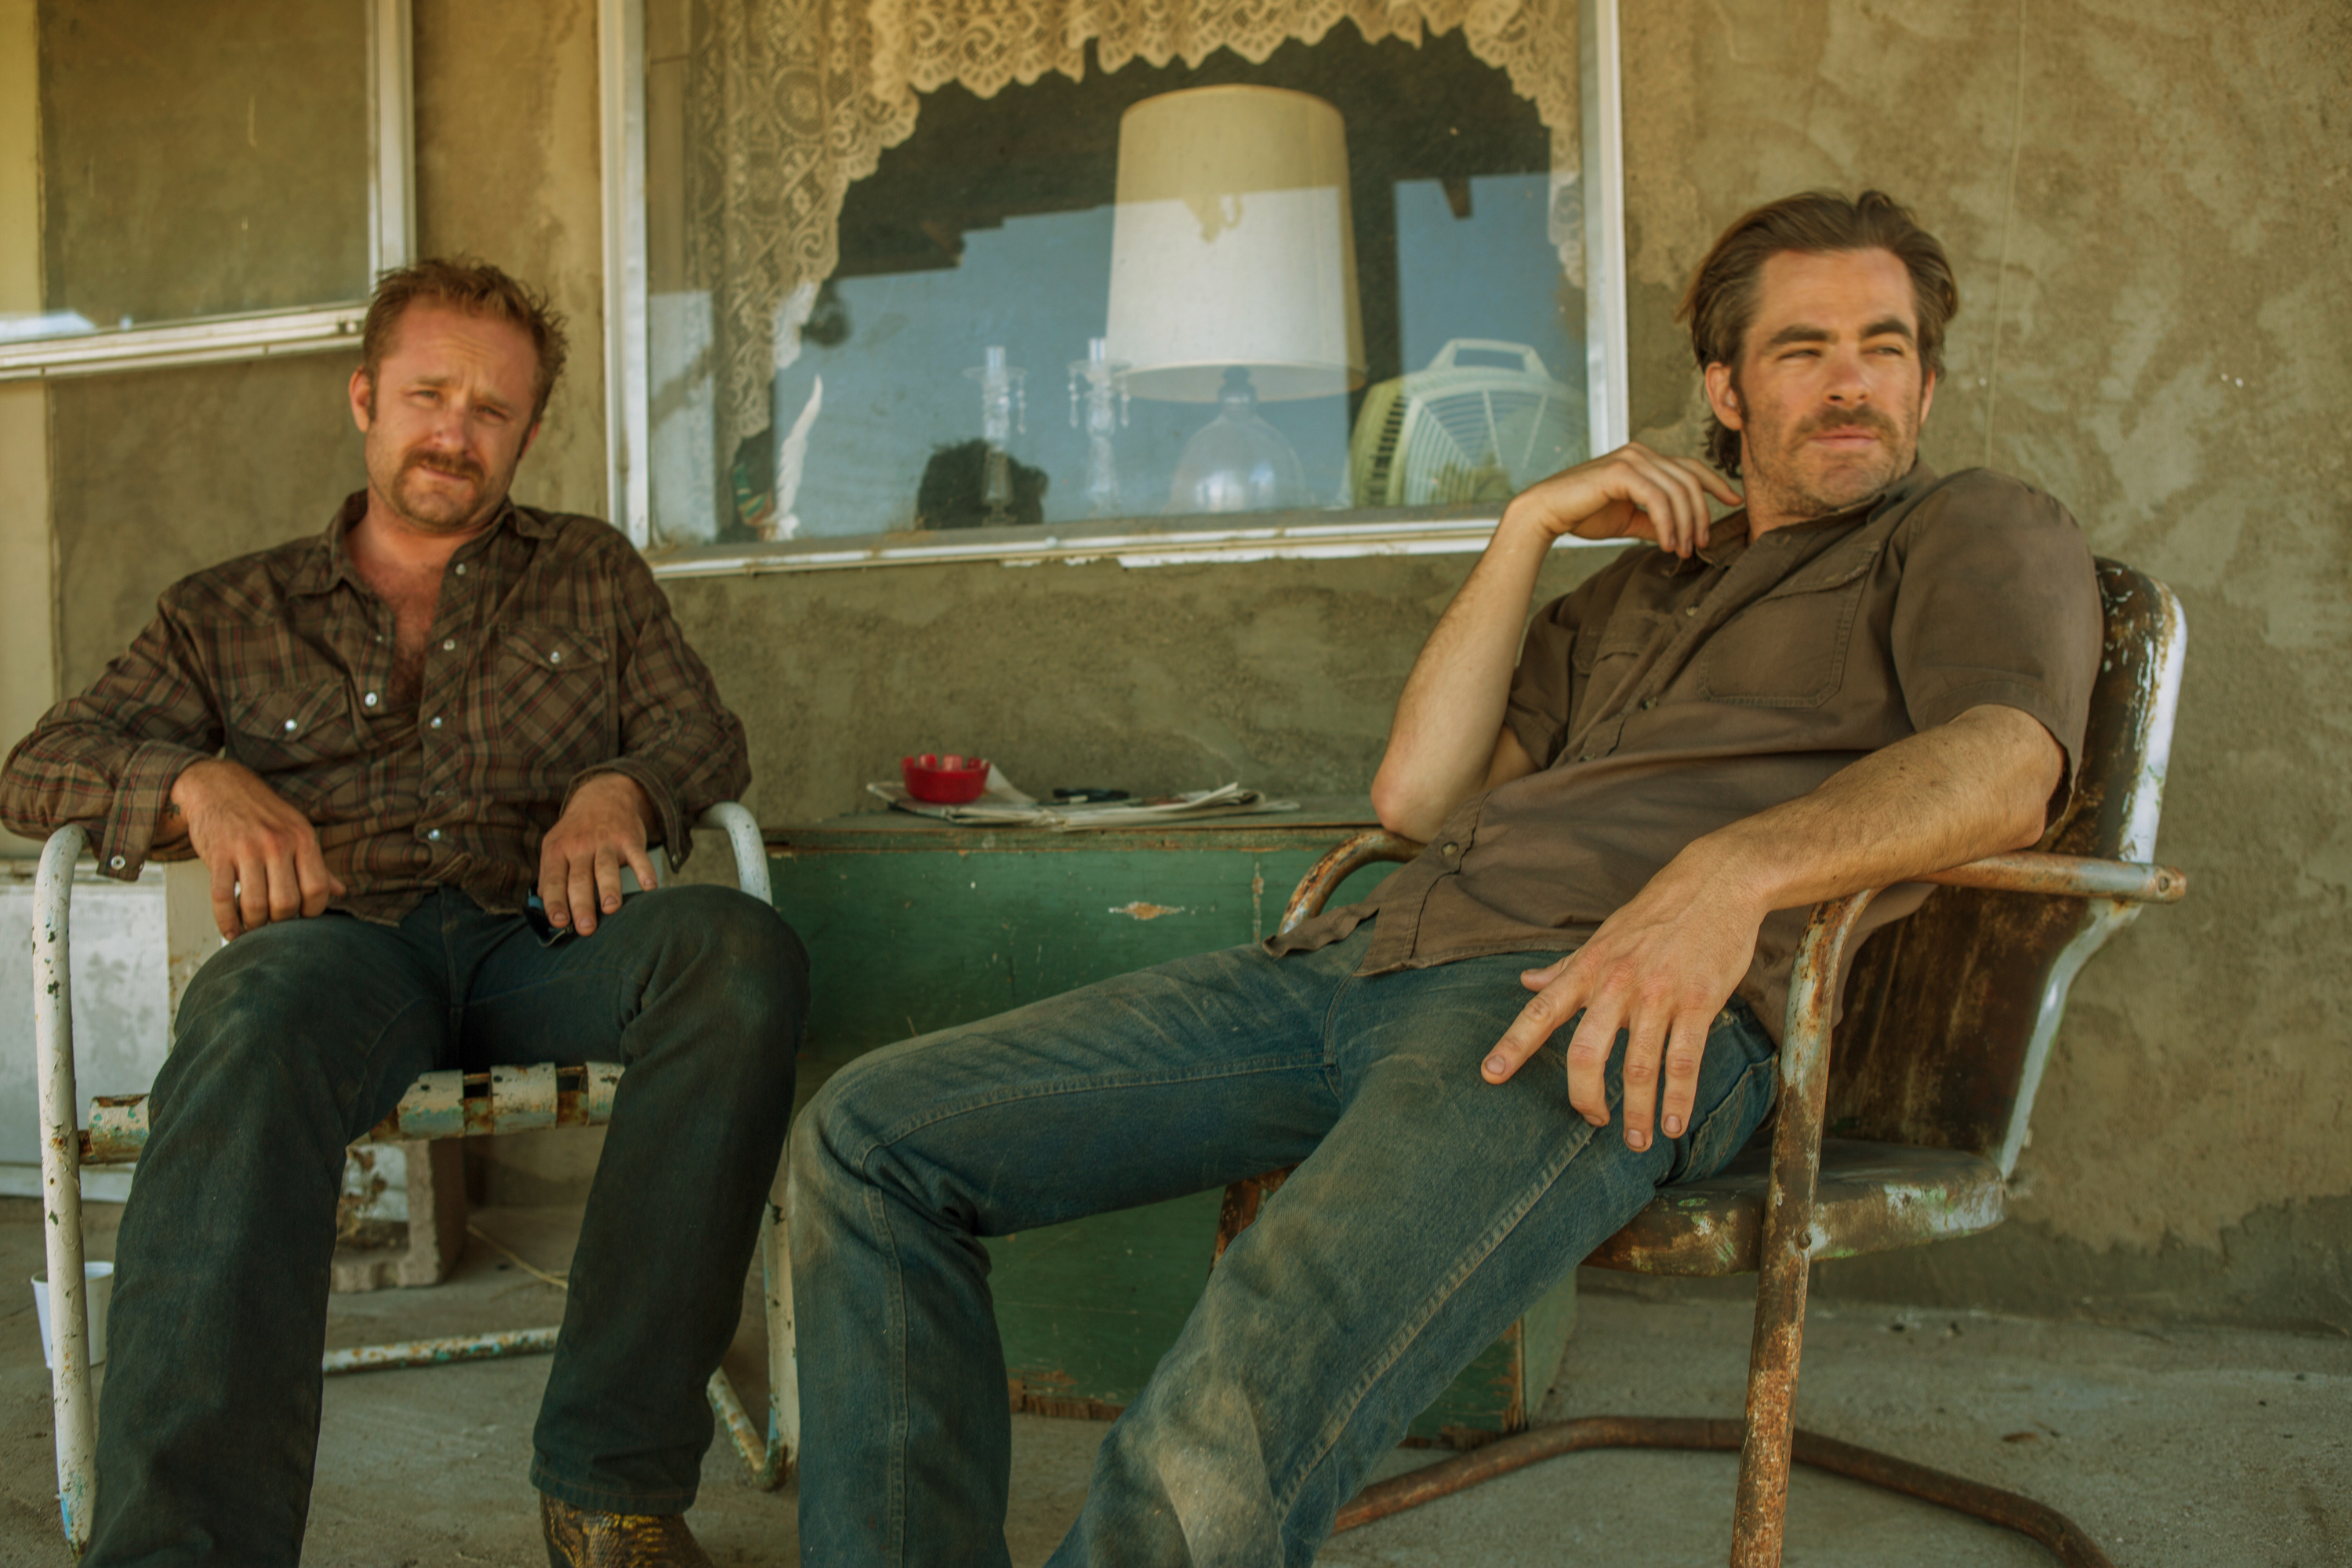 "<p><br /></p> <p>6. <a href=""http://amzn.to/2v8YUpP"" target=""_blank"" rel=""noreferrer noopener"">Hell or High Water</a></p> <p>Just another cowboy movie? That's what Ann and Les thought too, until they actually watched it. Ann didn't even think that she liked Westerns until she saw this movie about two brothers who go to desperate measures to save their family's ranch in Texas. So even if you think that Westerns just aren't ""your thing,"" we beg you to give it a chance! Let our review (and the fact that Chris Pine plays a cowboy) change your mind, at least.</p>"